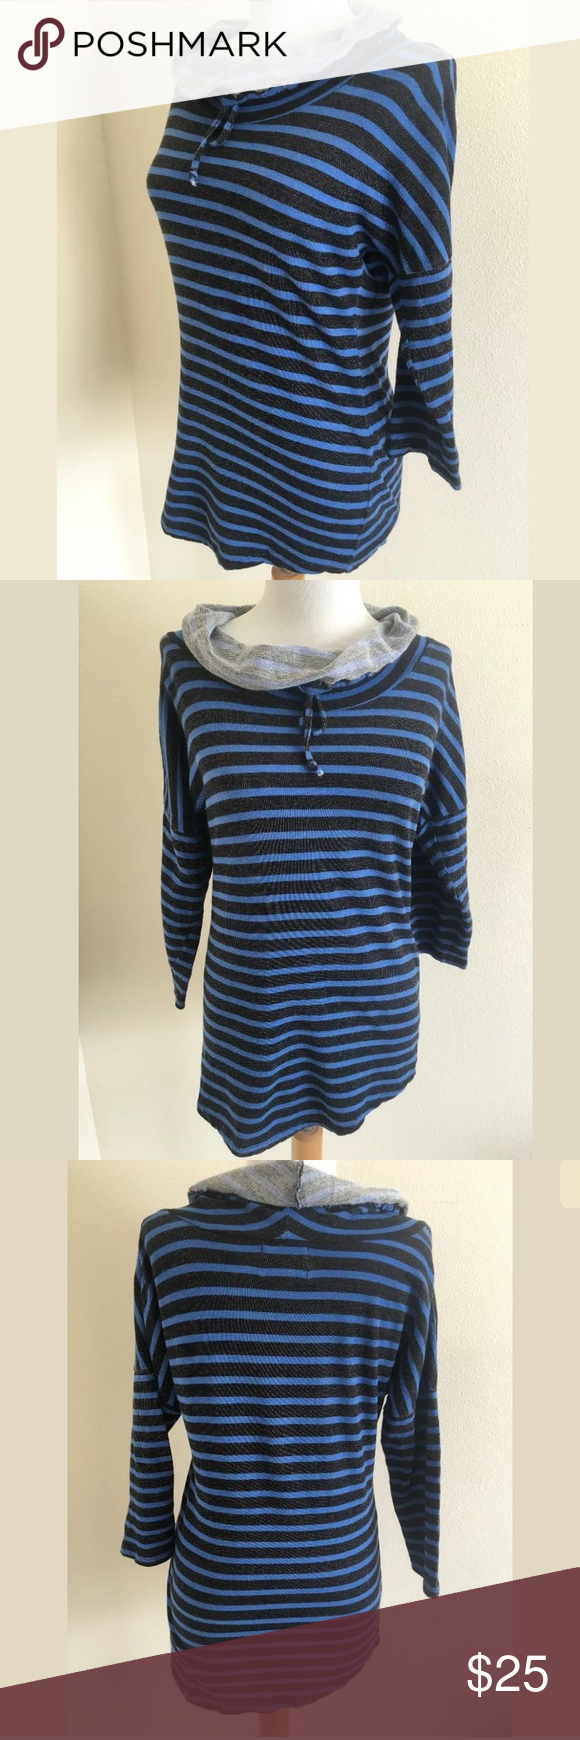 Cynthia Rowley sweatshirt SKU: SD14346  Length Shoulder To Hem: 27 Bust: 47 Waist: 34 Fabric Content: 100% Cotton We're not sure if this is intentional, but it's a bit longer on the right side in front, and on the left side in back. Cynthia Rowley Tops Sweatshirts & Hoodies